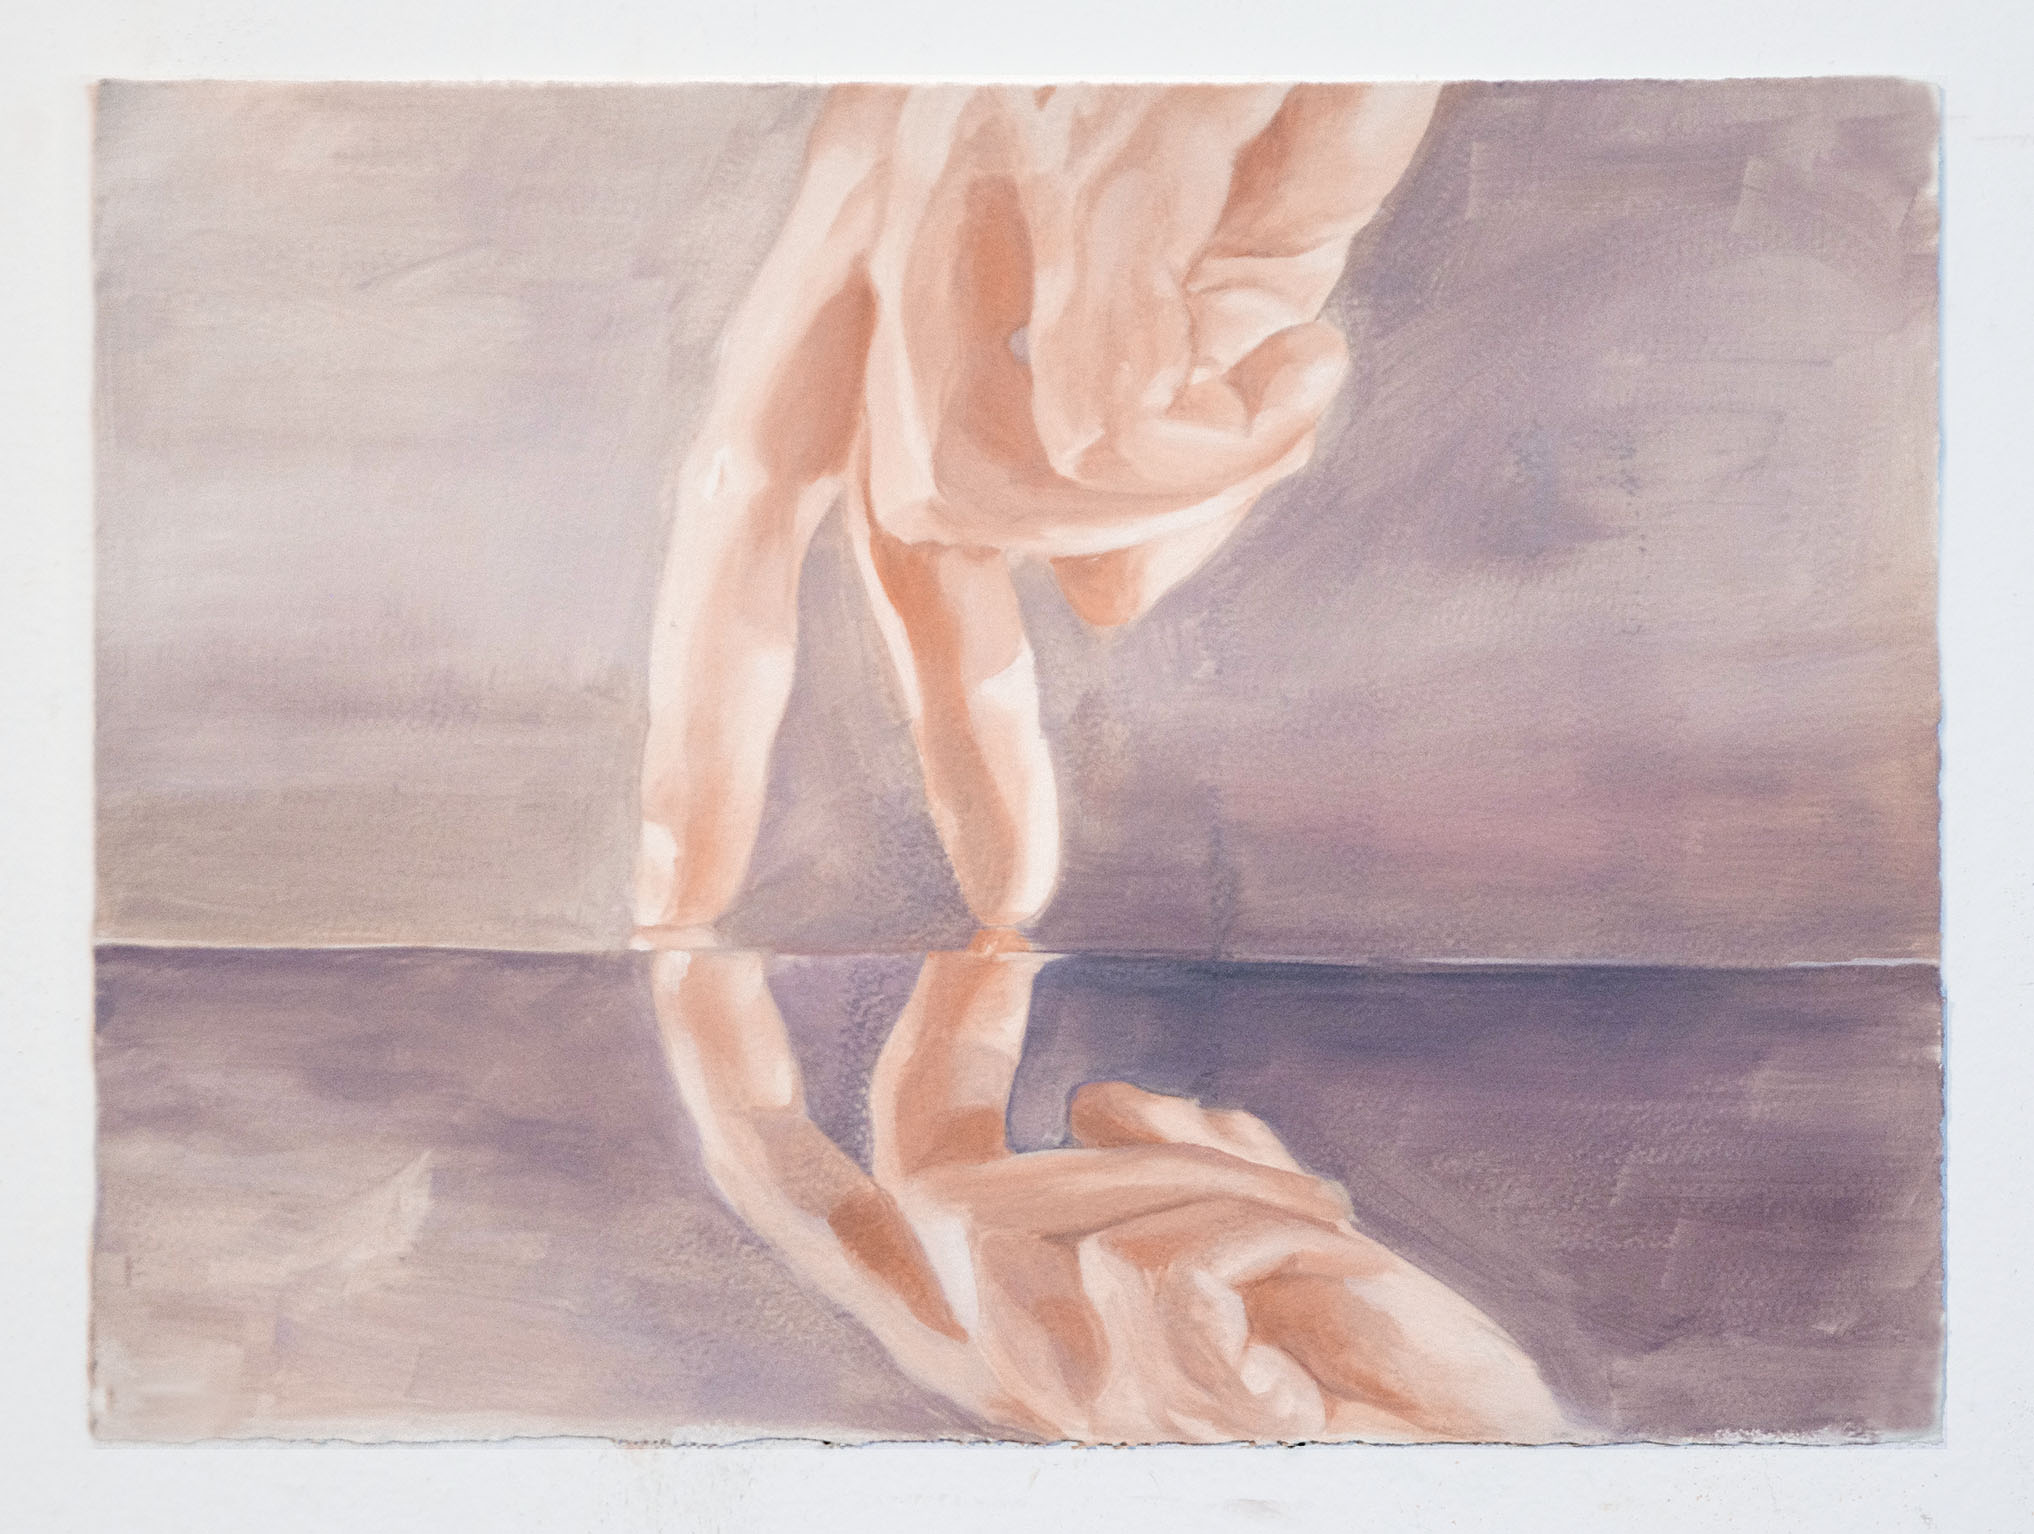 Sarah Kurz, My Image of You, 2014, oil on paper, 11 x 15 inches